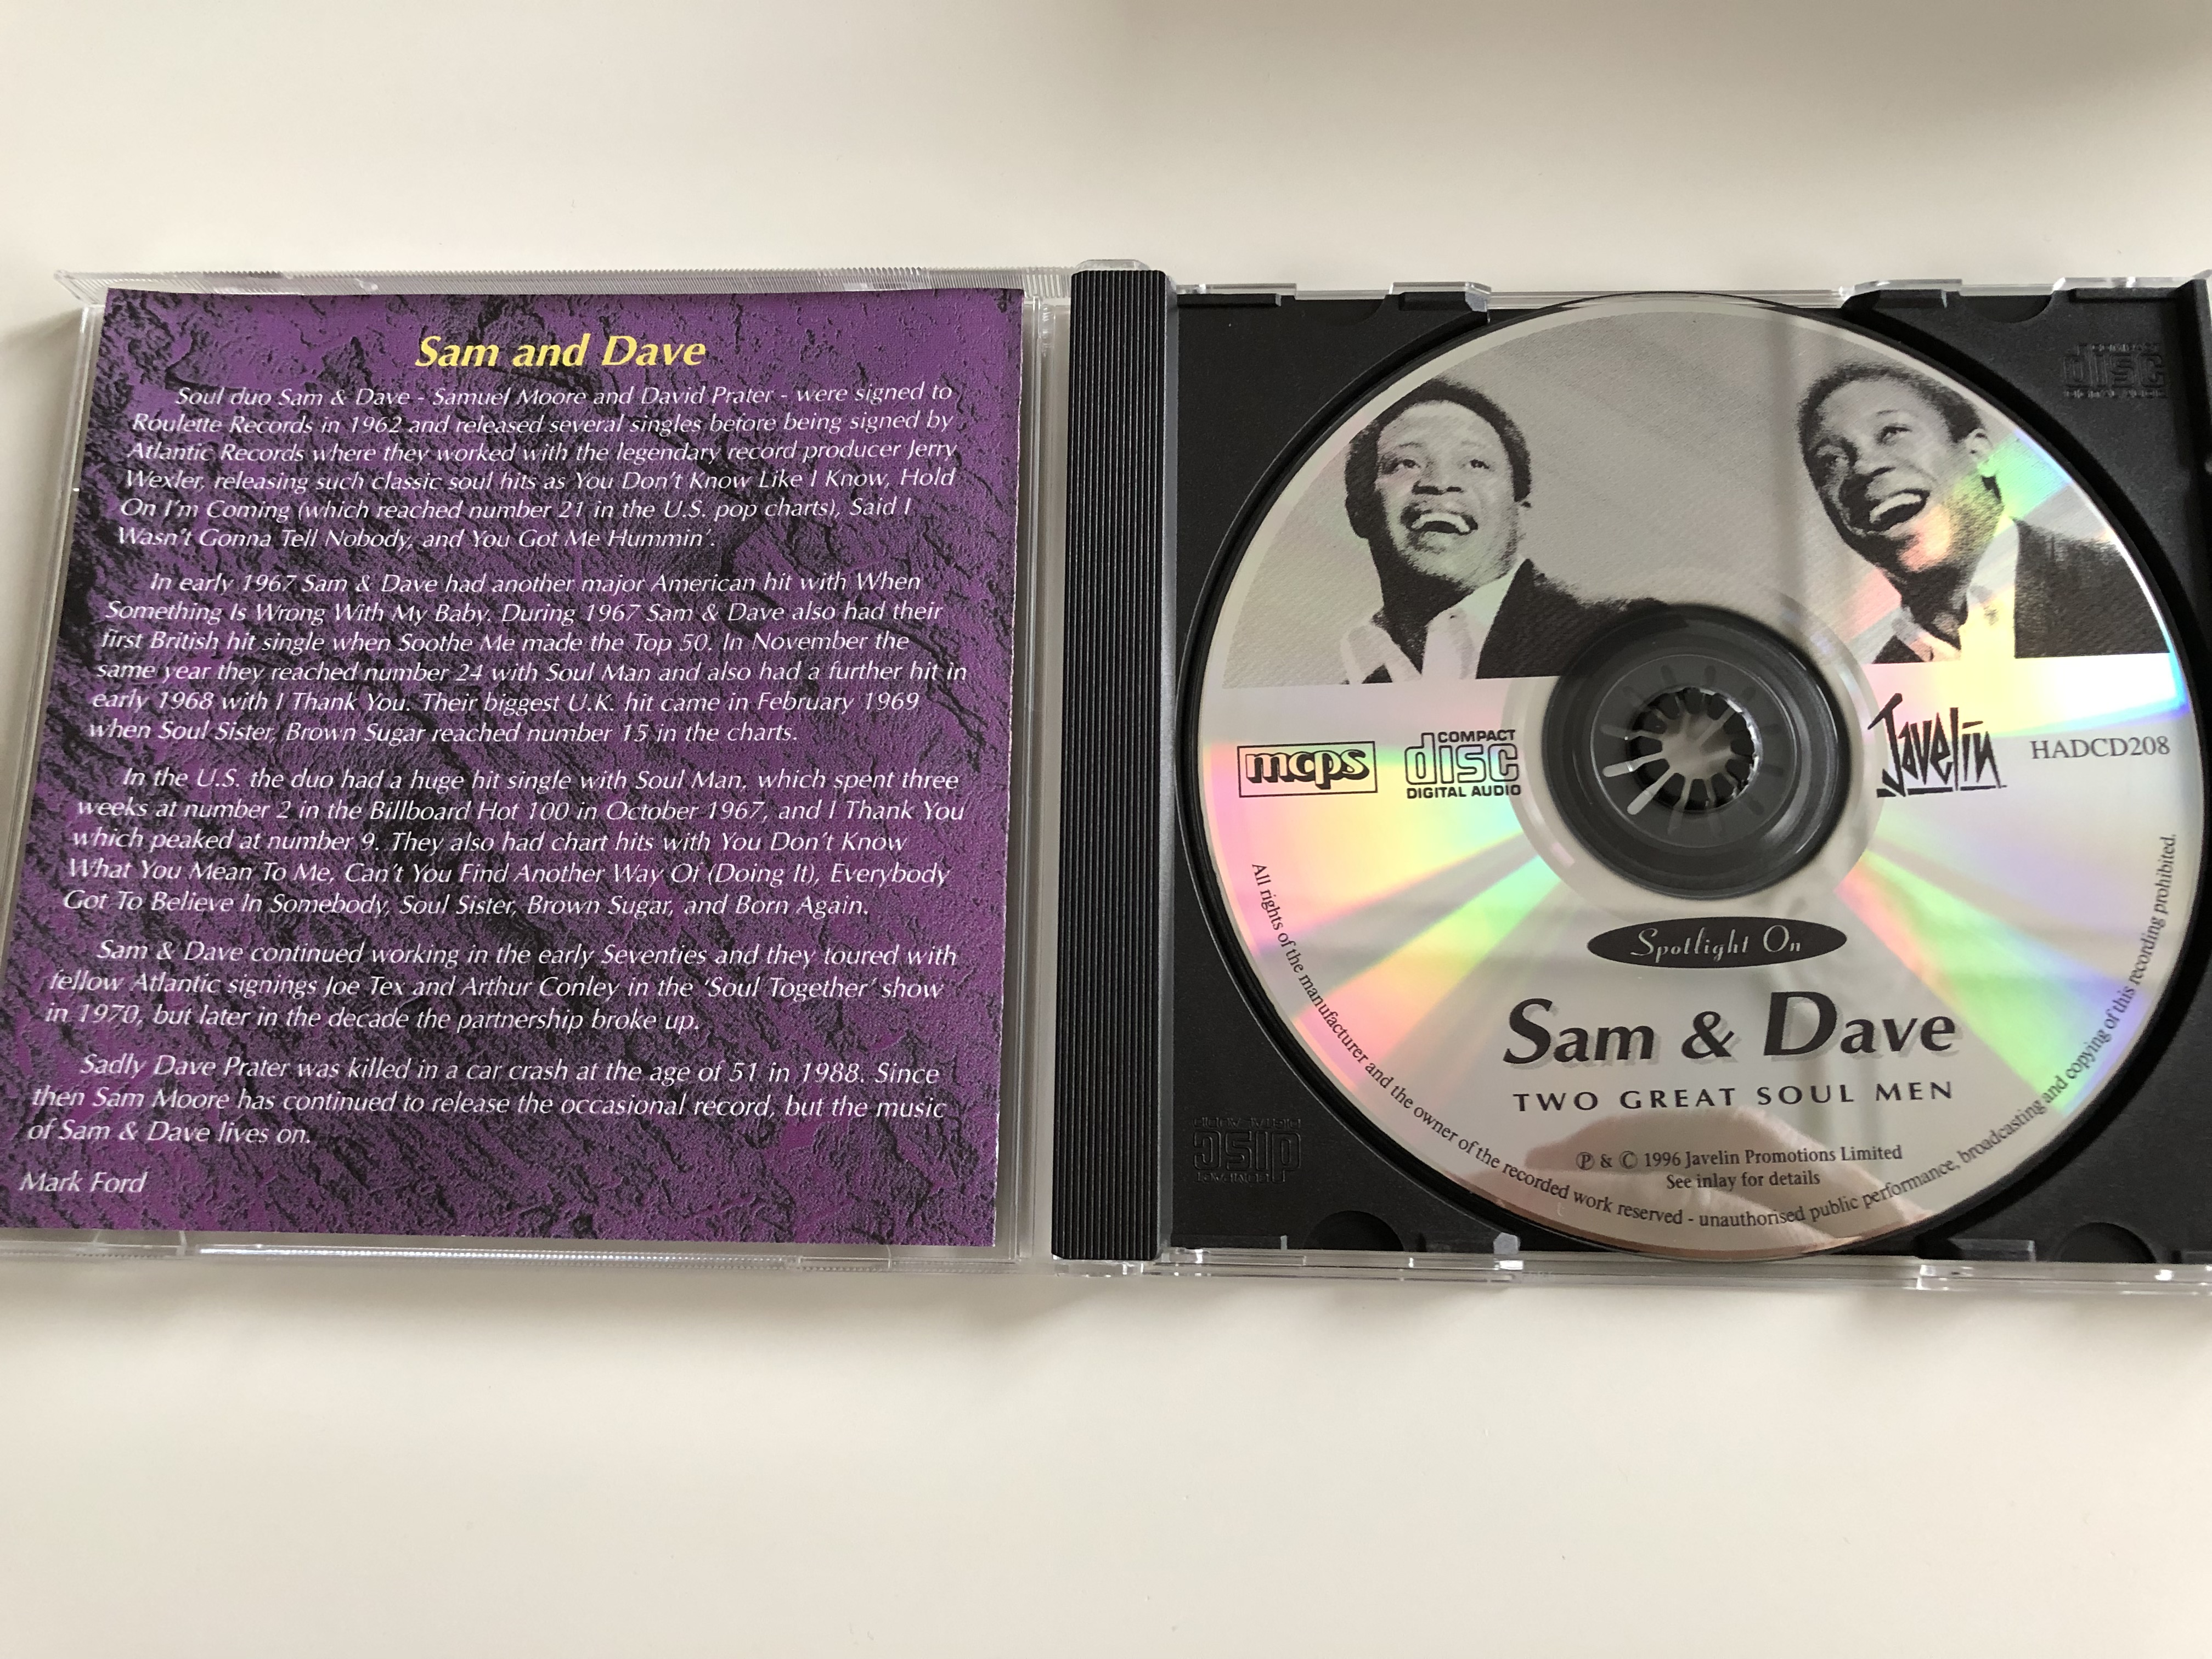 sam-dave-two-great-soul-men-featuring-hold-on-i-m-coming-soul-man-soul-sister-brown-sugar-soothe-me-javelin-audio-cd-1996-hadcd208-2-.jpg